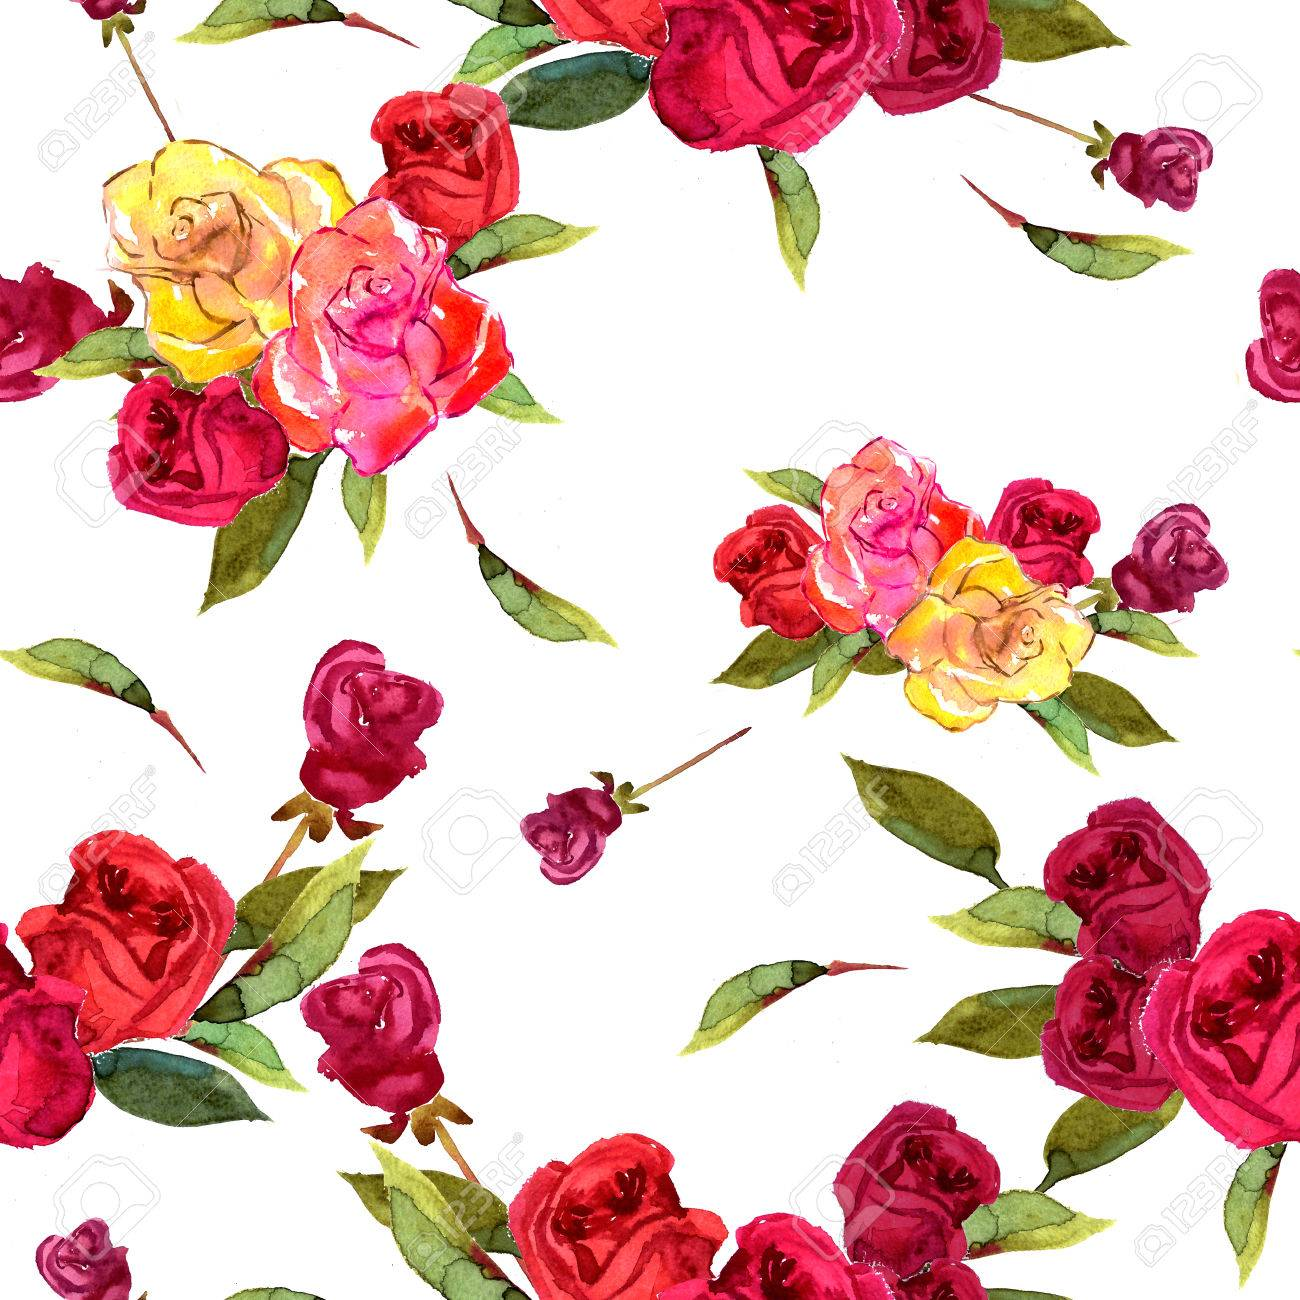 Illustration Watercolor Flowers Rose Red Yellow And Green Leaves ...